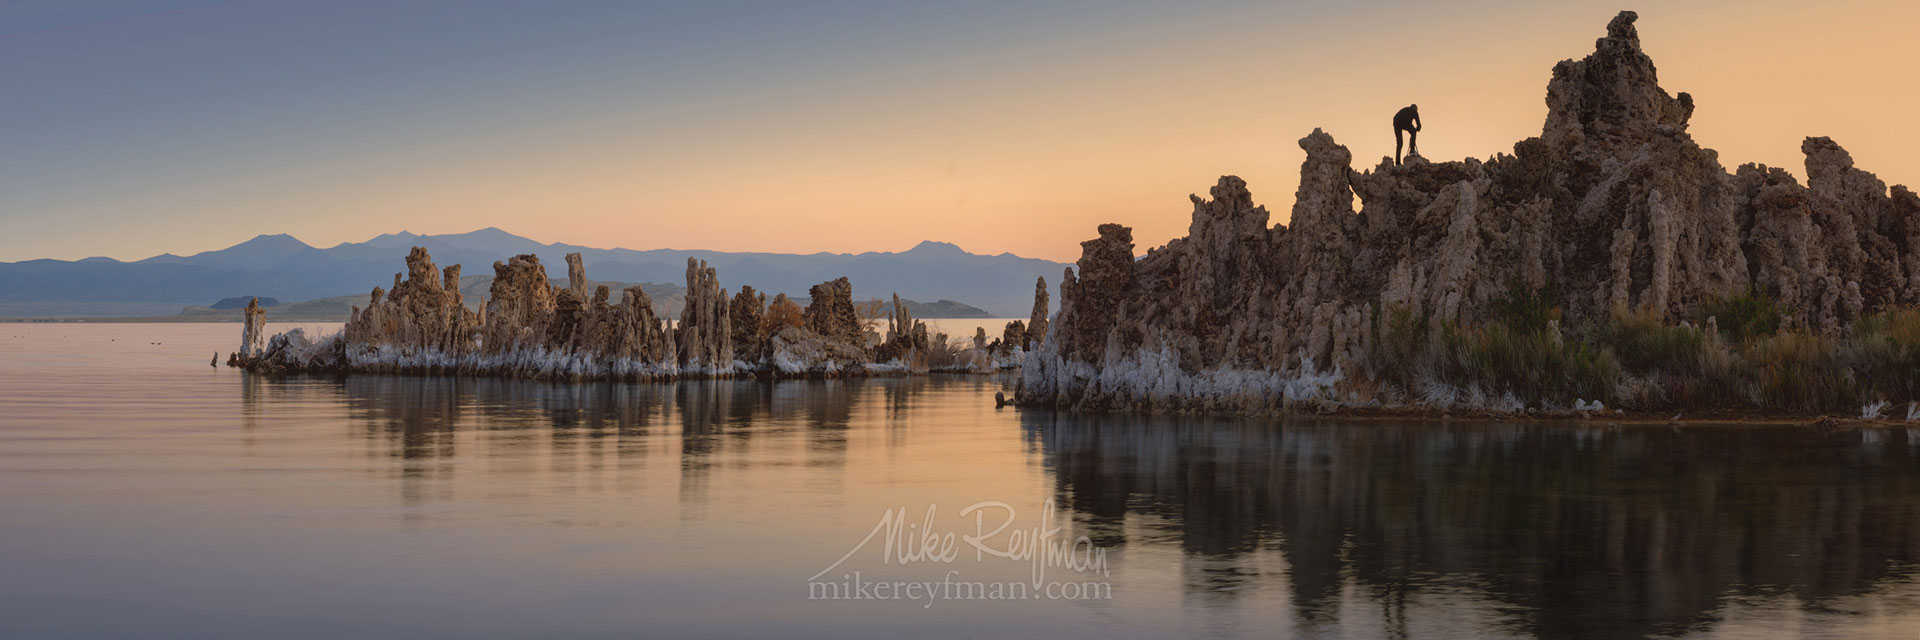 Mono Lake, Tufa State Natural Reserve, Eastern Sierra, California, USA ML1-MRMRO6402-04-Pano - Mono Lake Tufa State Natural Reserve, Eastern Sierra, California - Mike Reyfman Photography